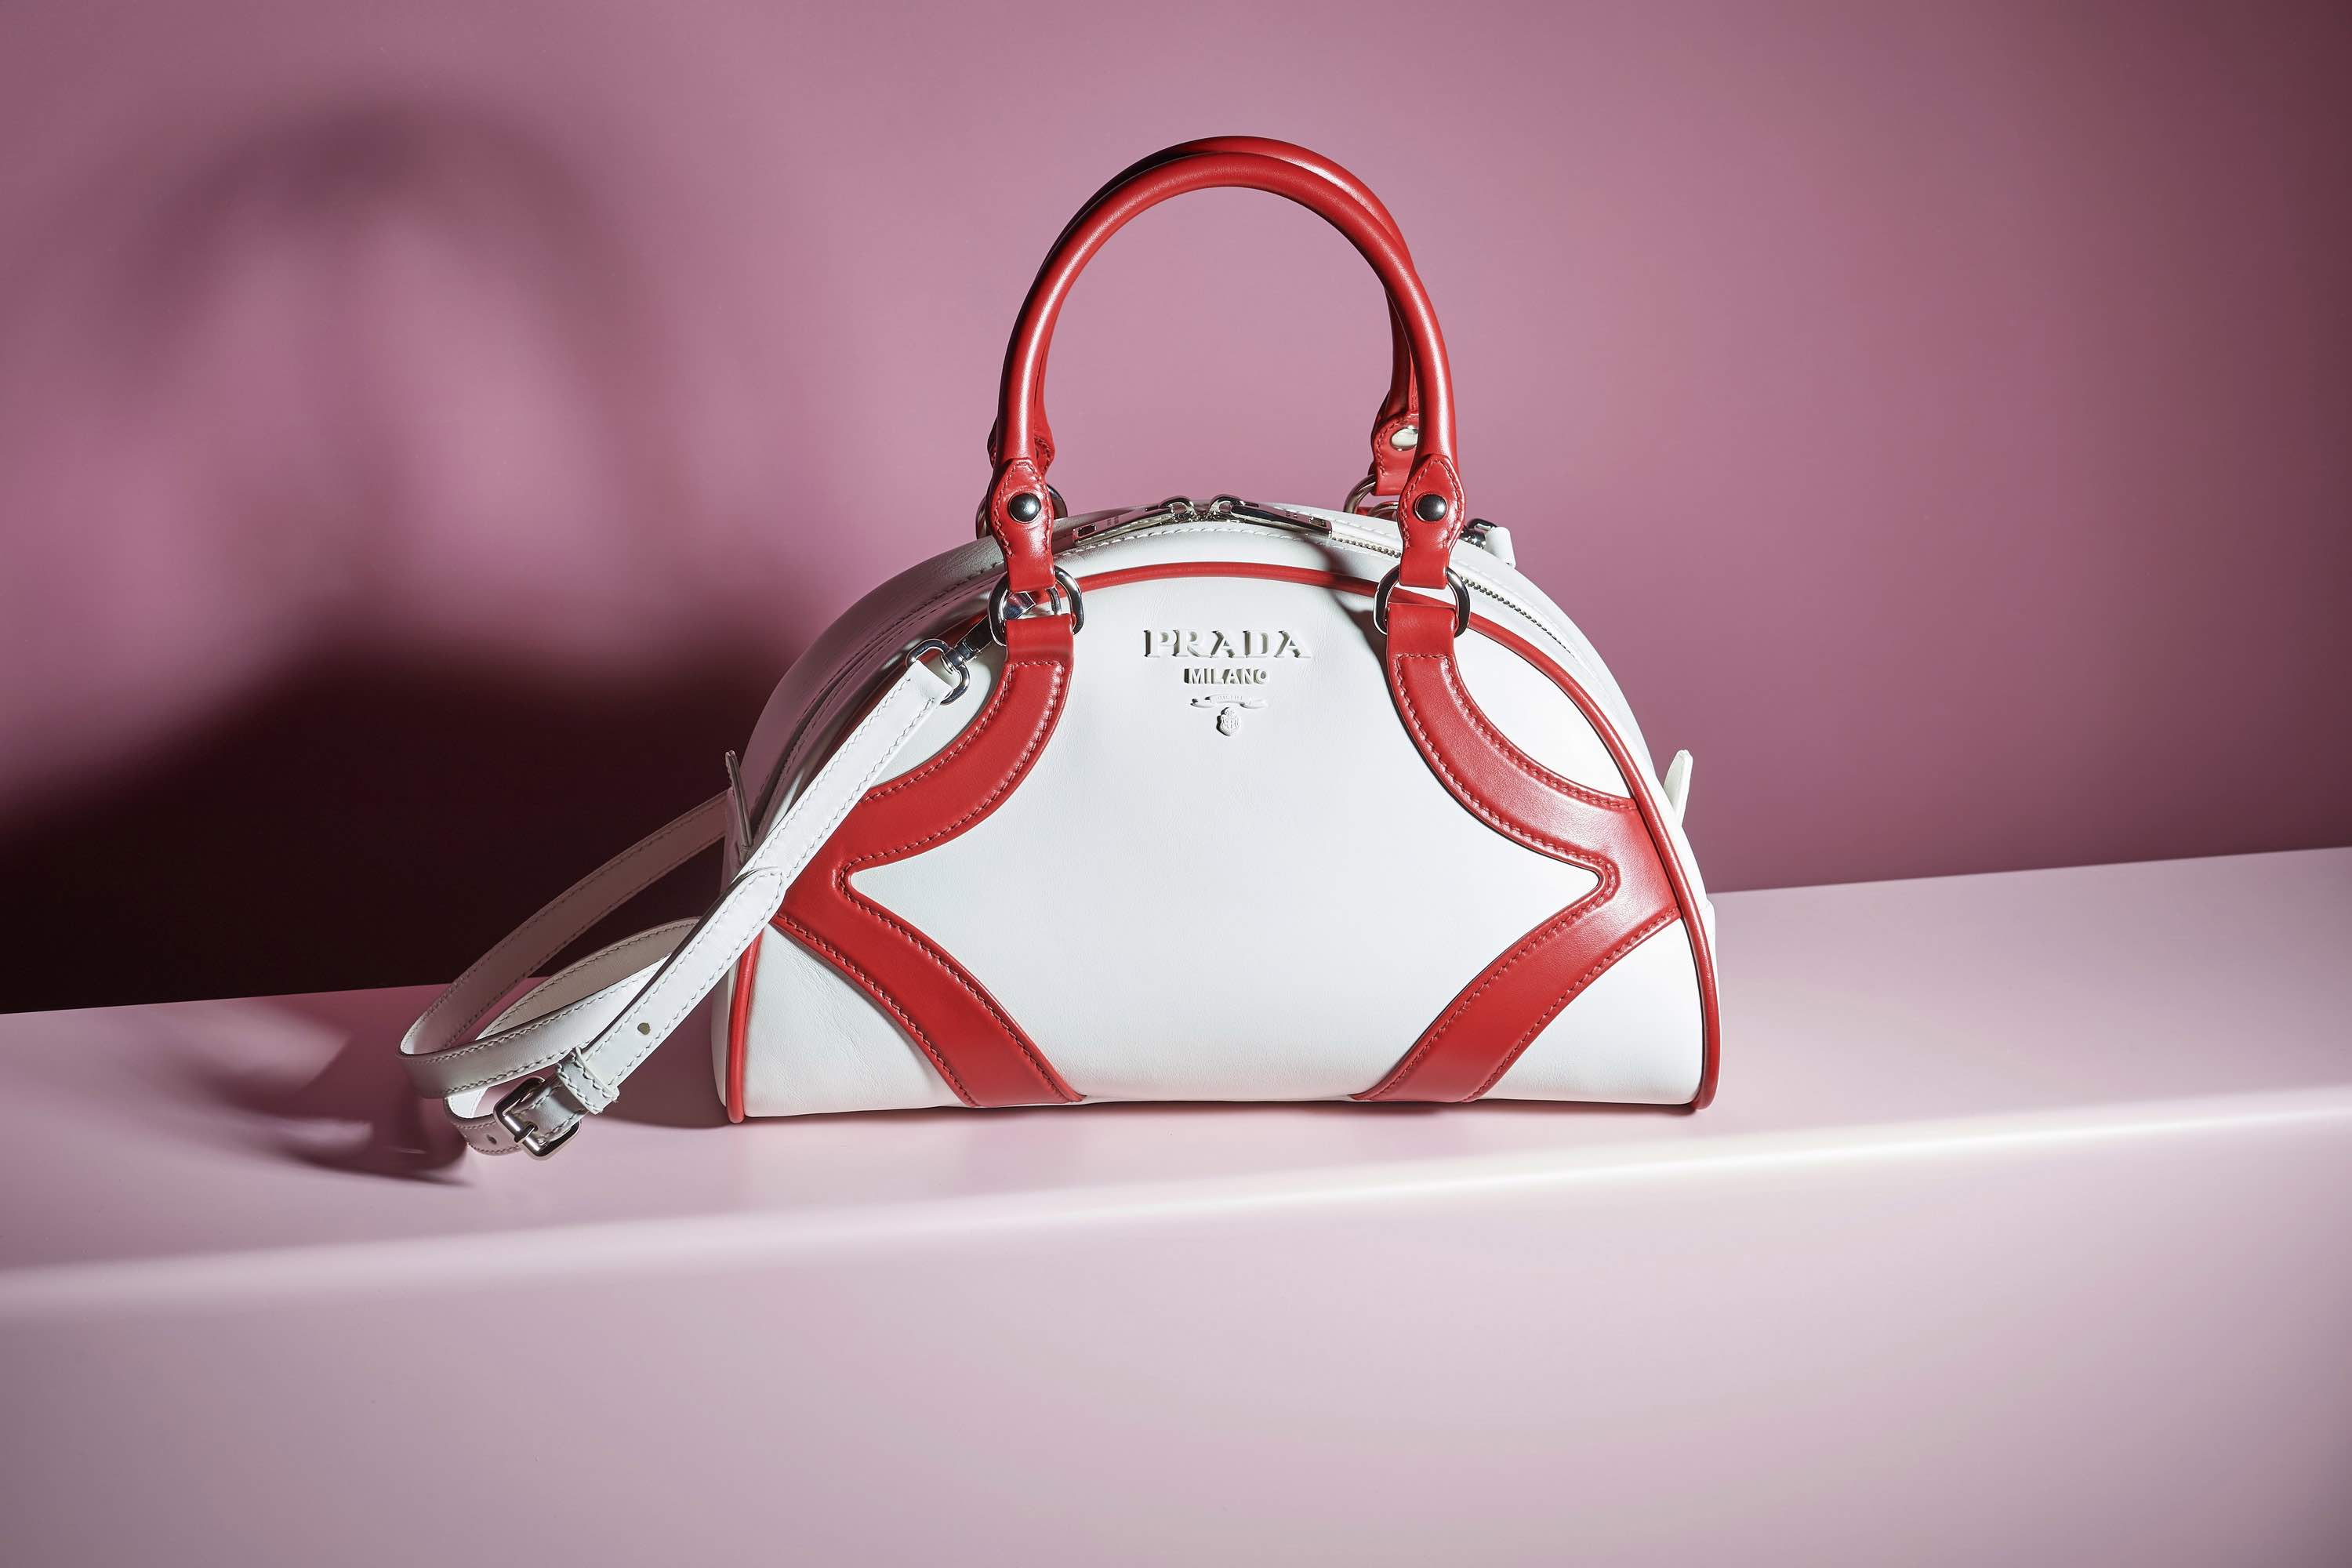 Prada red and white bowling bag resort 2020 collection